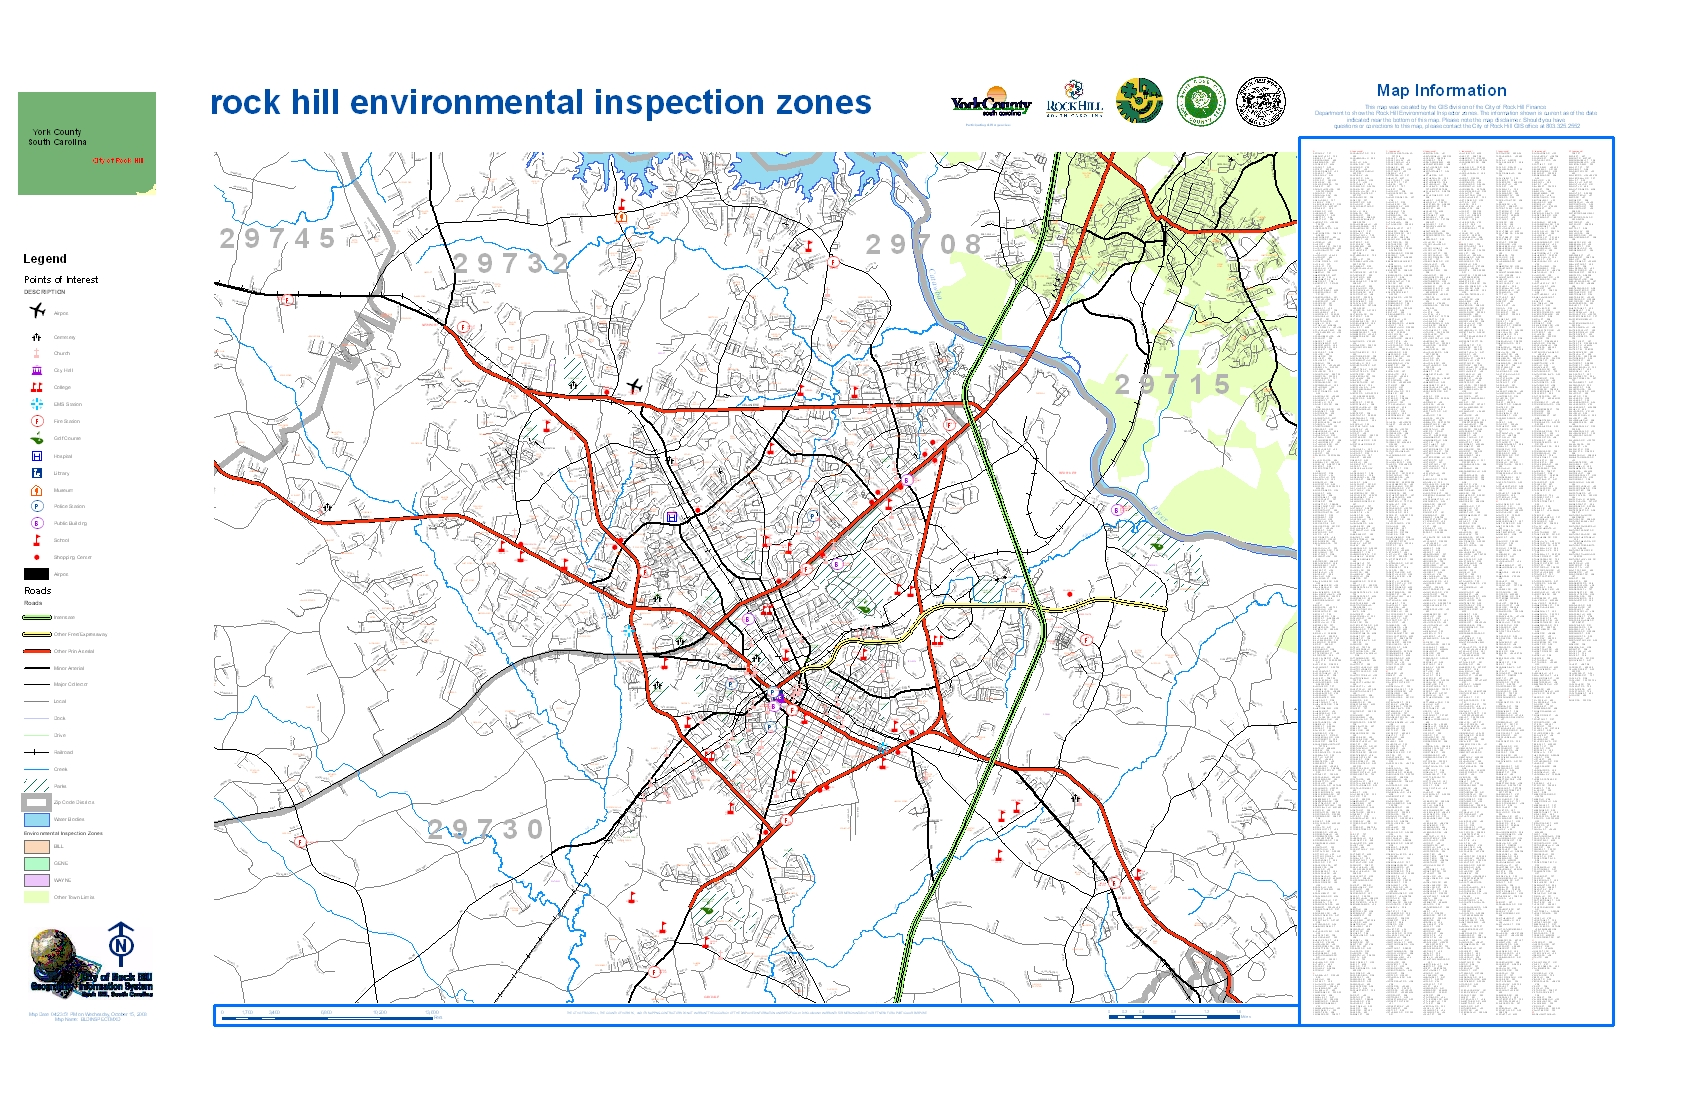 City of Rock Hill Primary Fire Zones Features: Points of interest, Functional road classifications, RH primary fire response zones, Street names w/index,Creeks and Rivers...